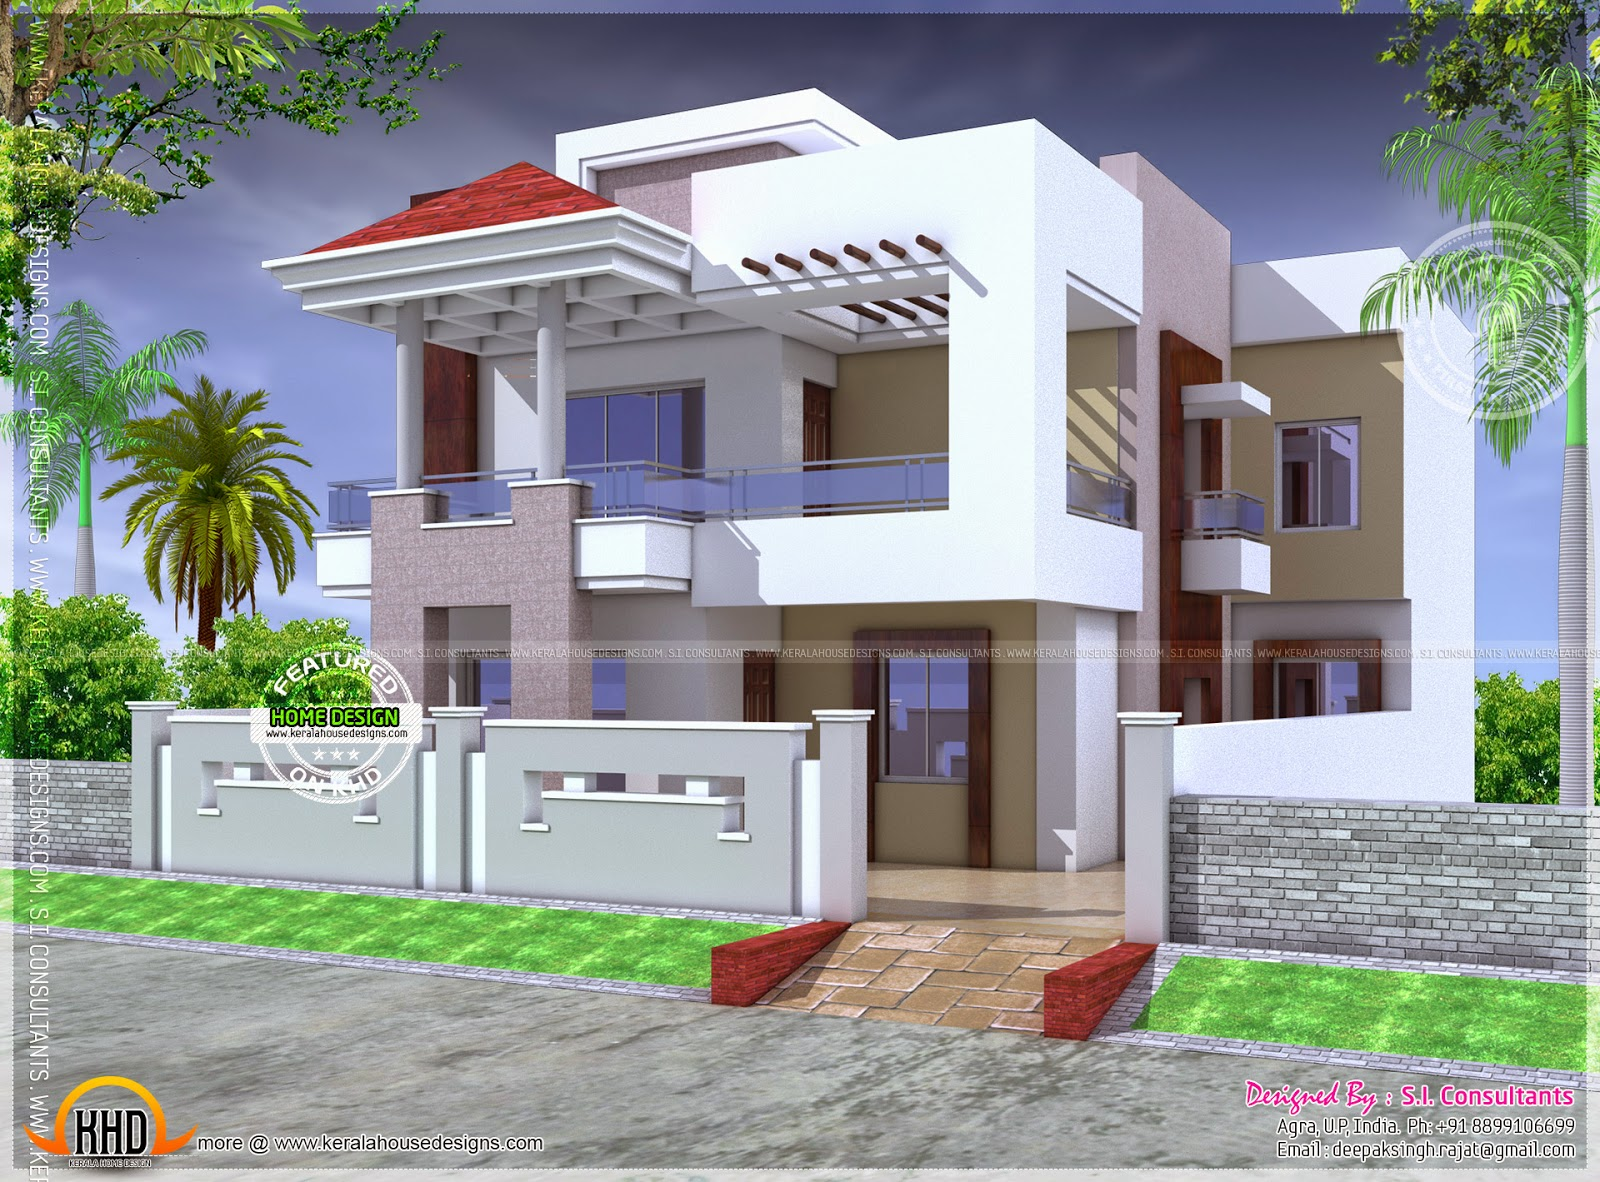 March 2014 kerala home design and floor plans for 2 bedroom house plans in india